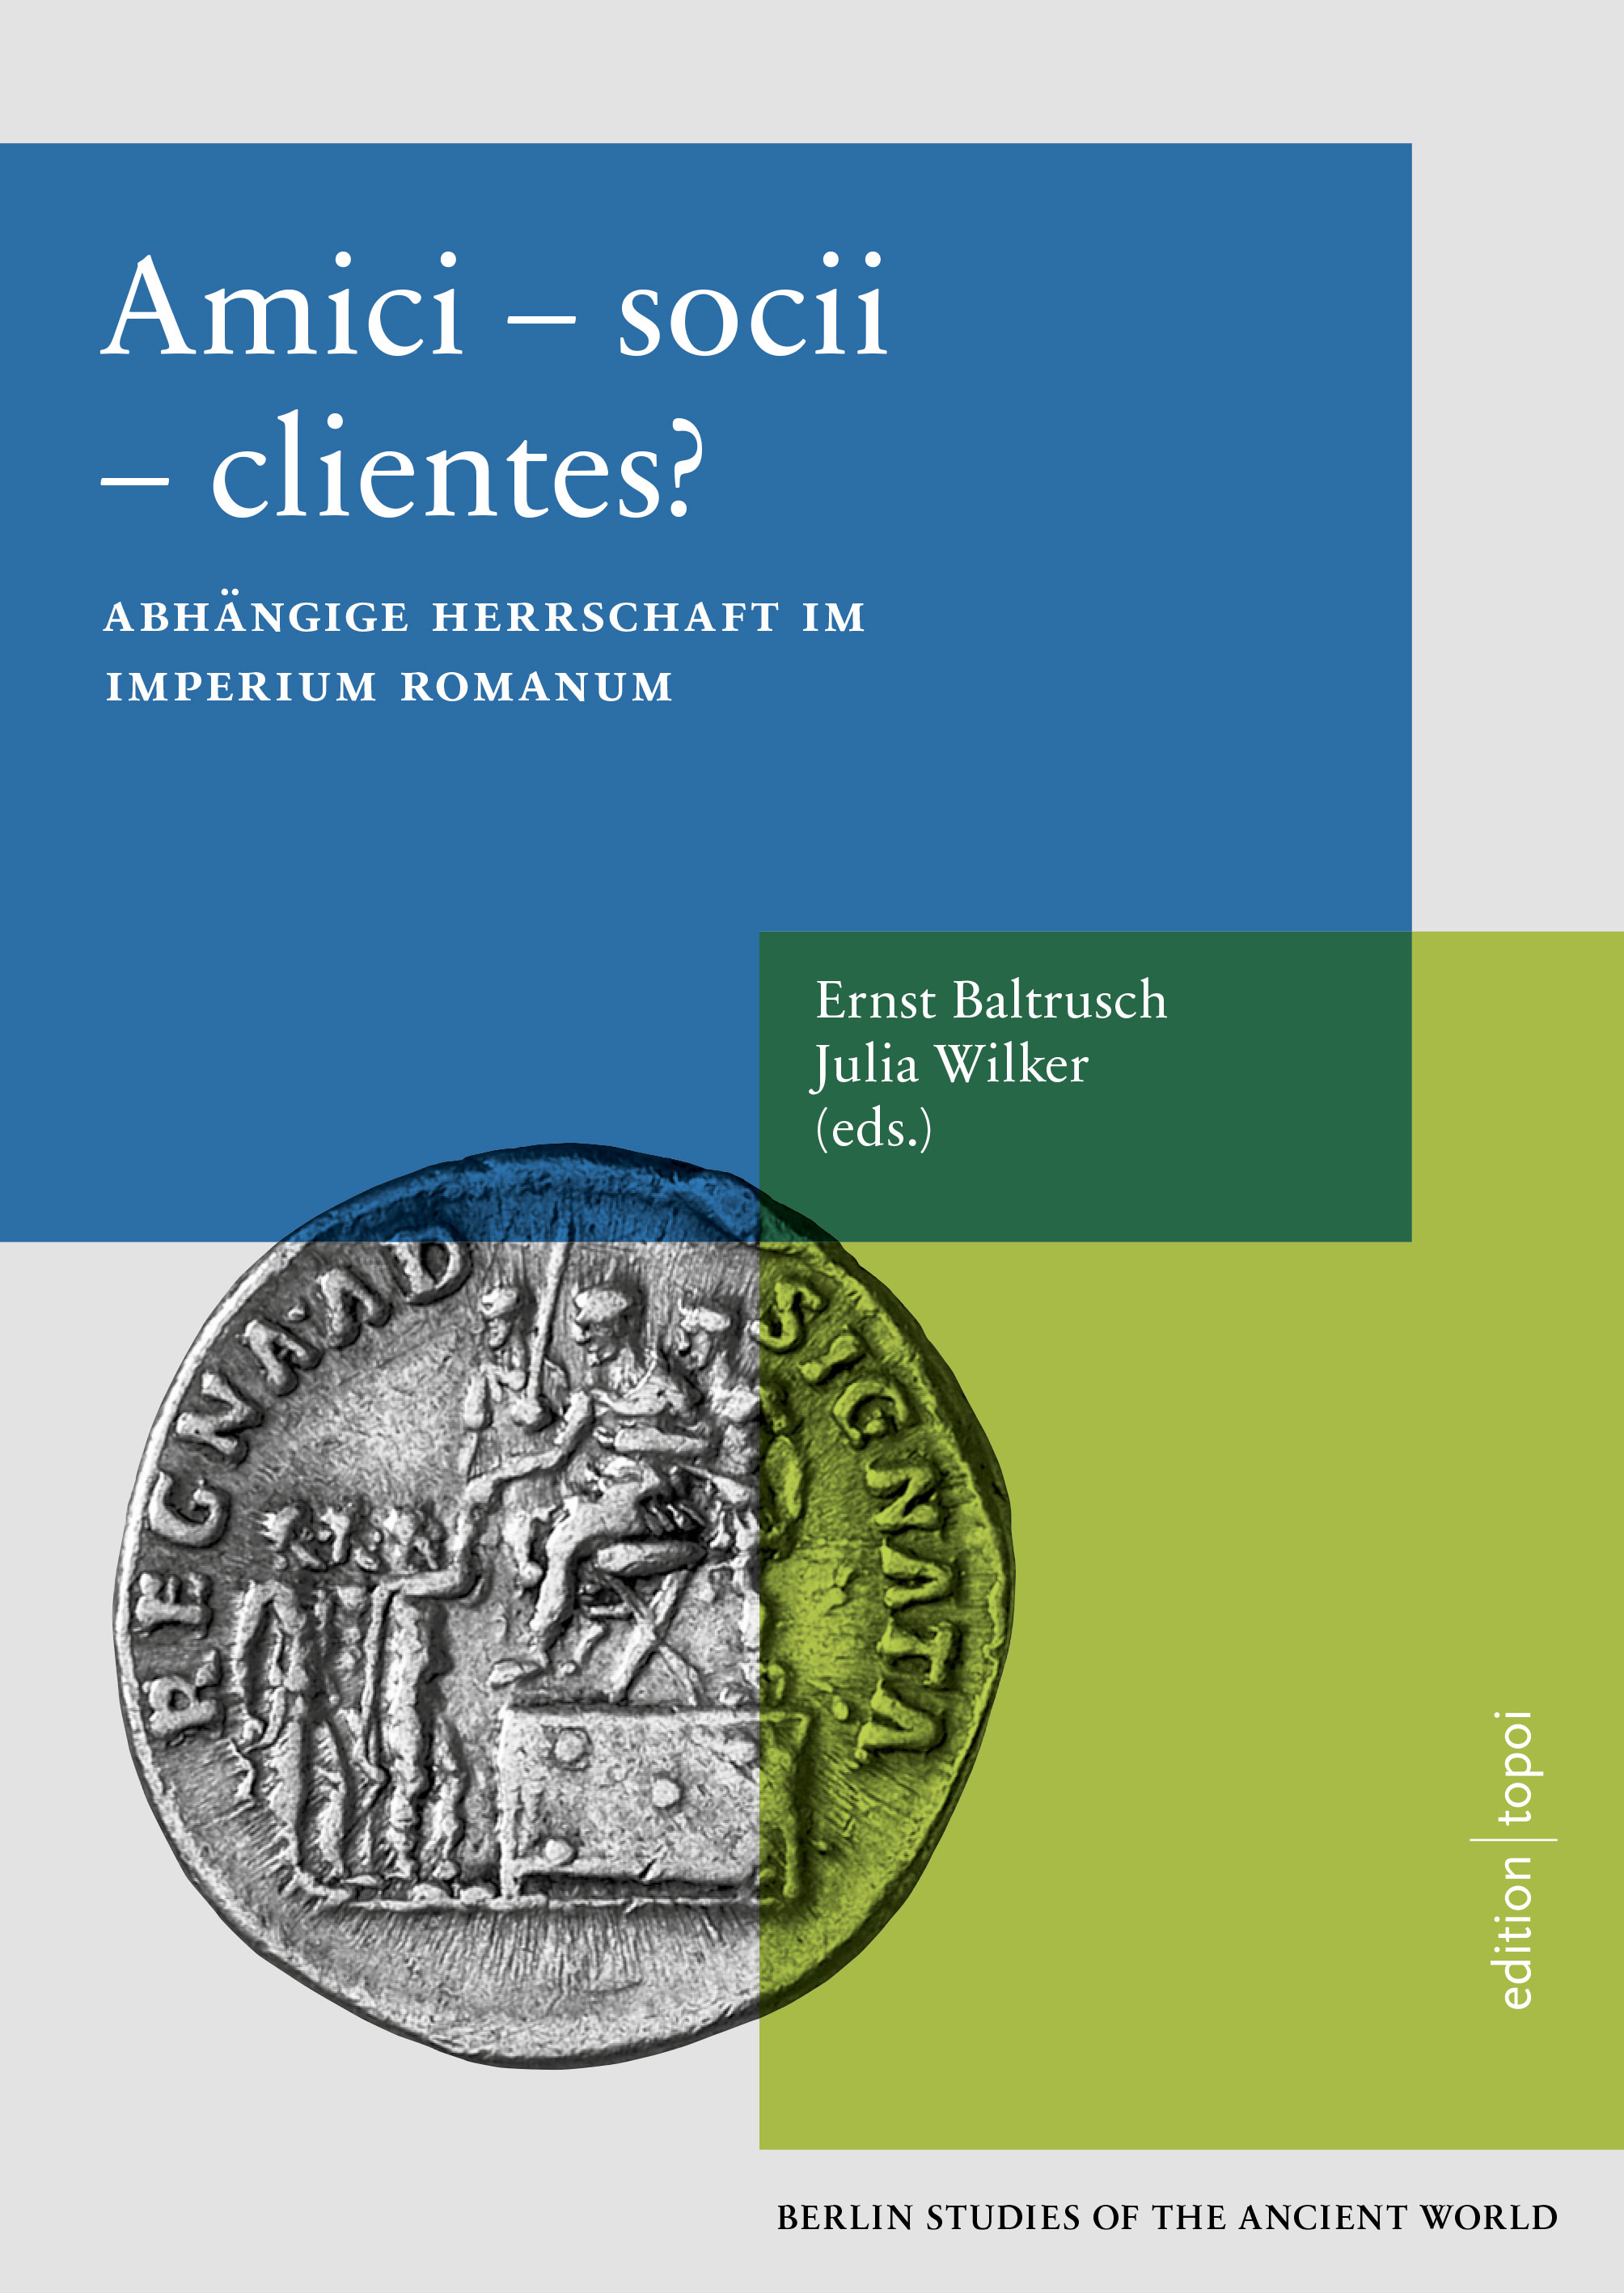 Amici-socii-clientes?, Ernst Baltrusch, Julia Wilker (eds.), Cover | Edition Topoi | CC-BY NC 3.0